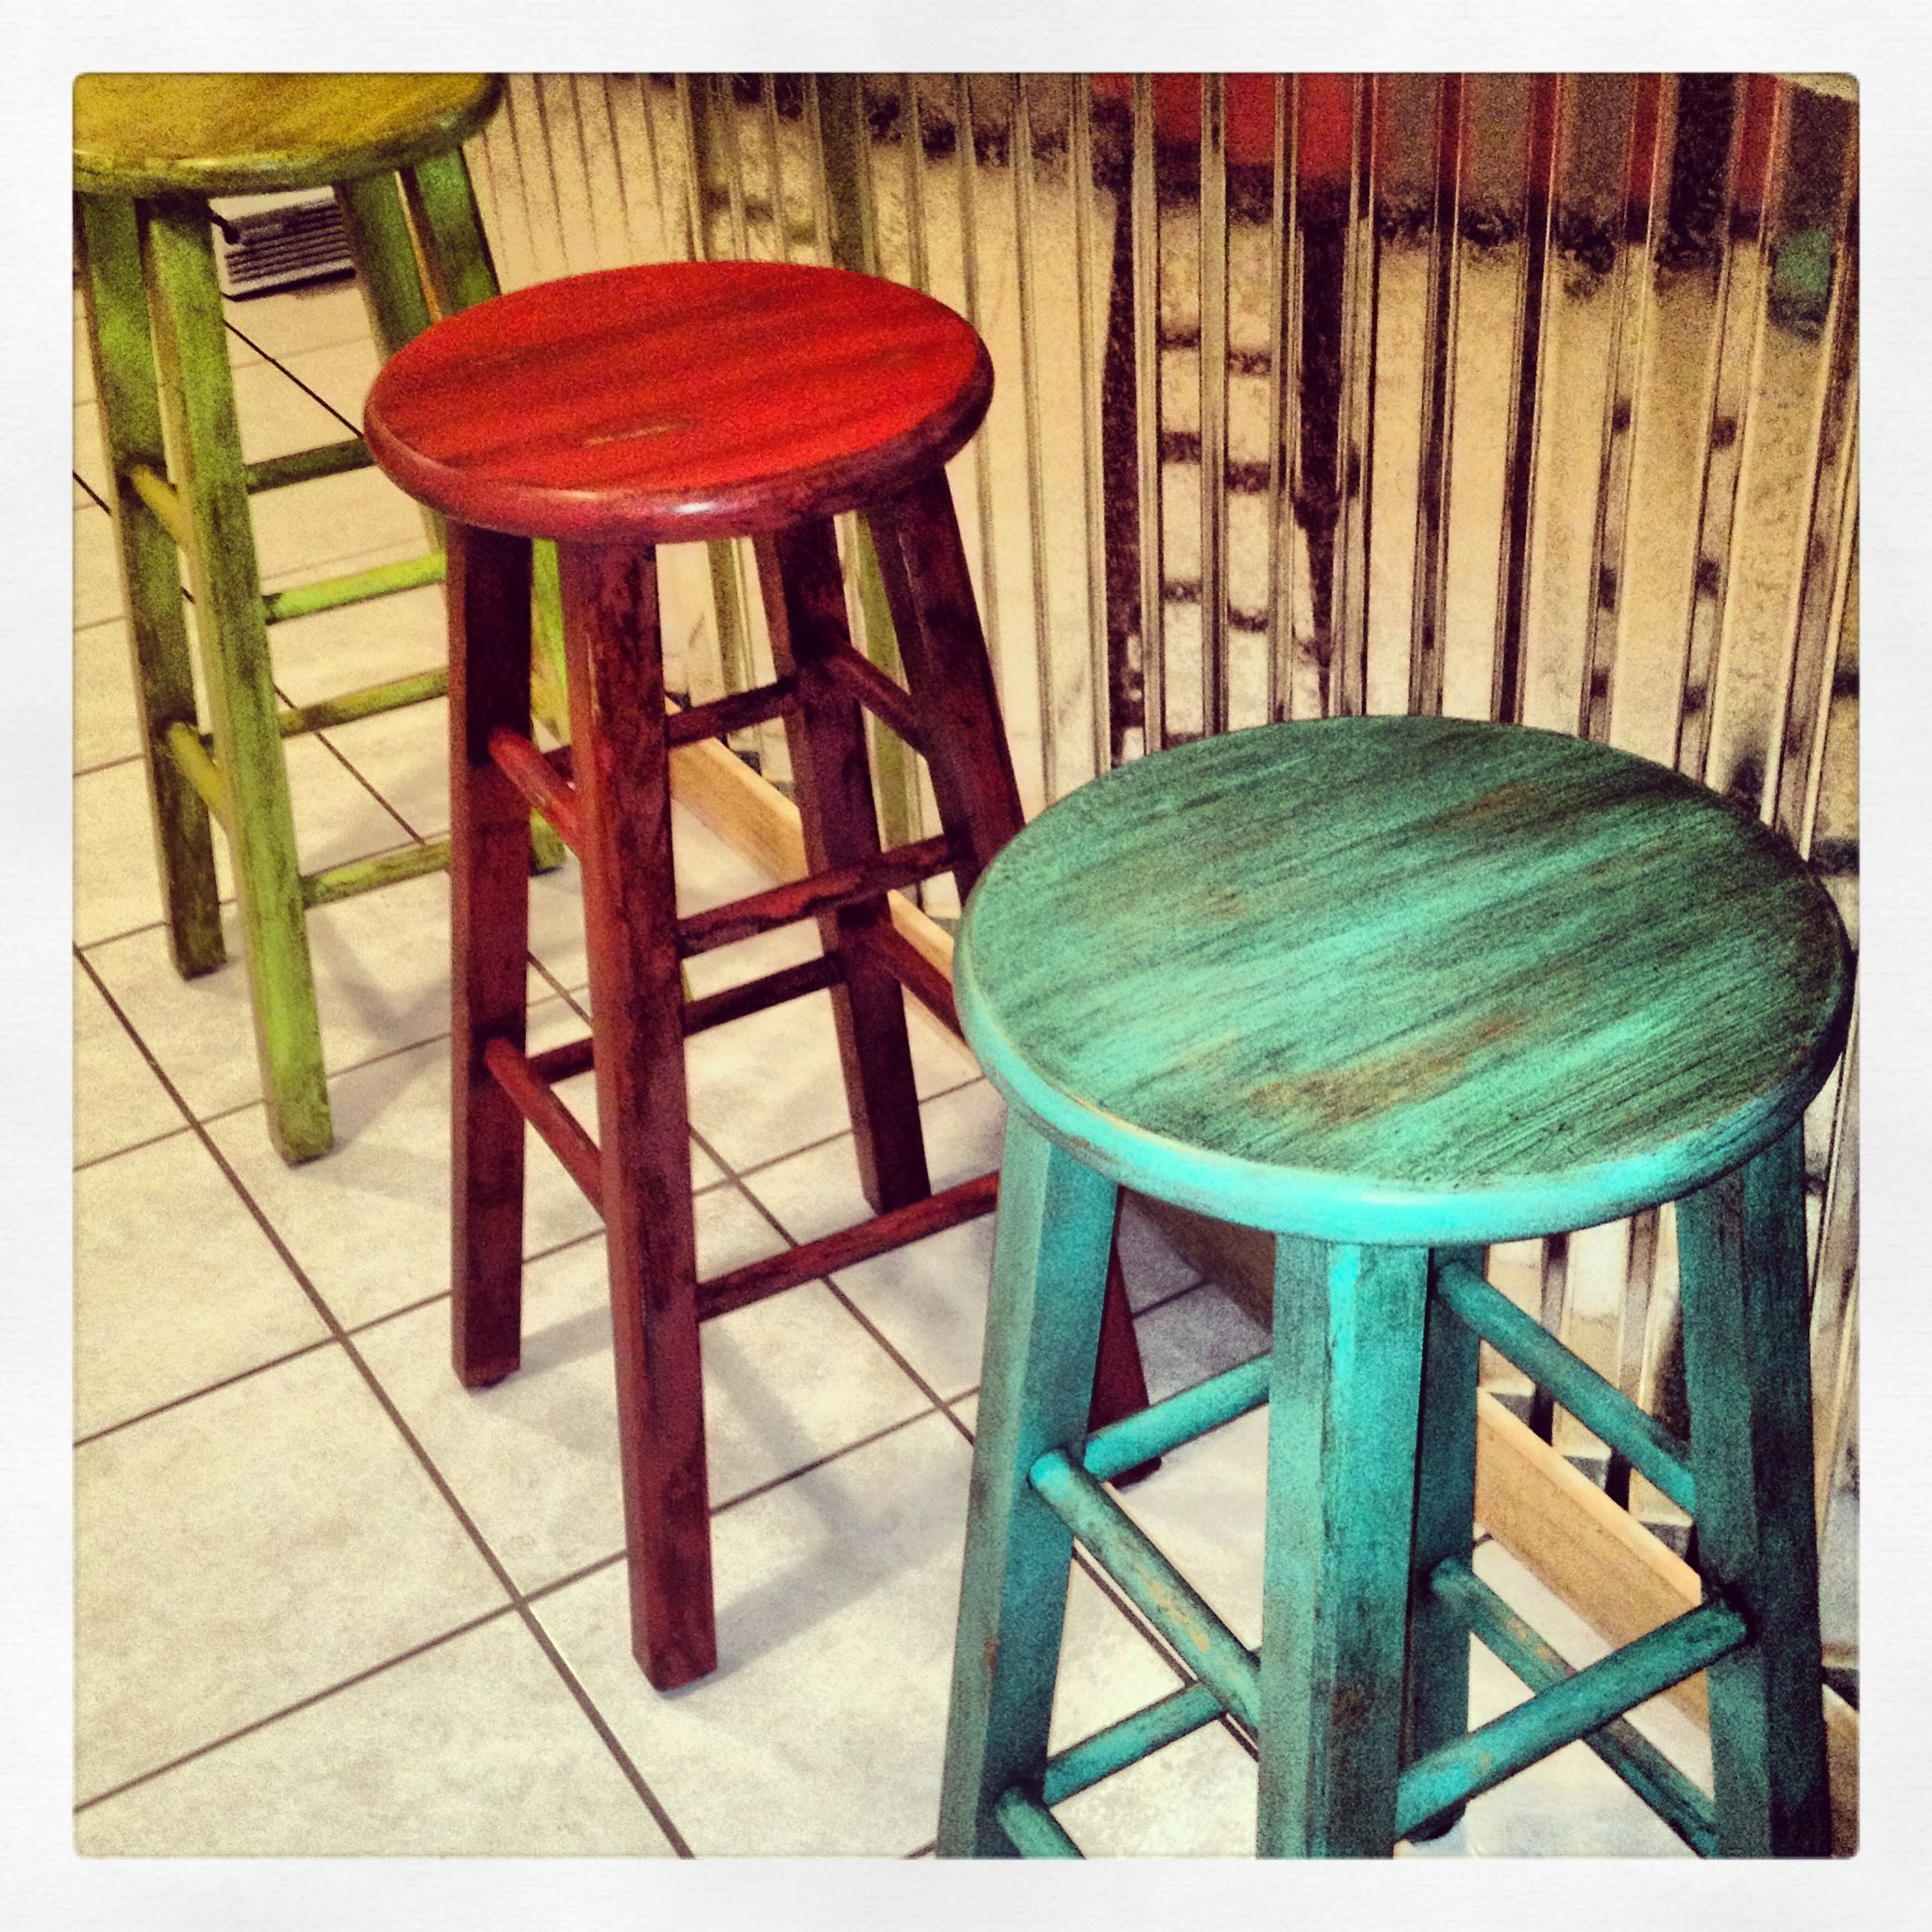 Colorful Wooden Kitchen Chairs Gaming Chair With Cup Holder Painted Stools Glaze Brushed On Beautifulsalvage